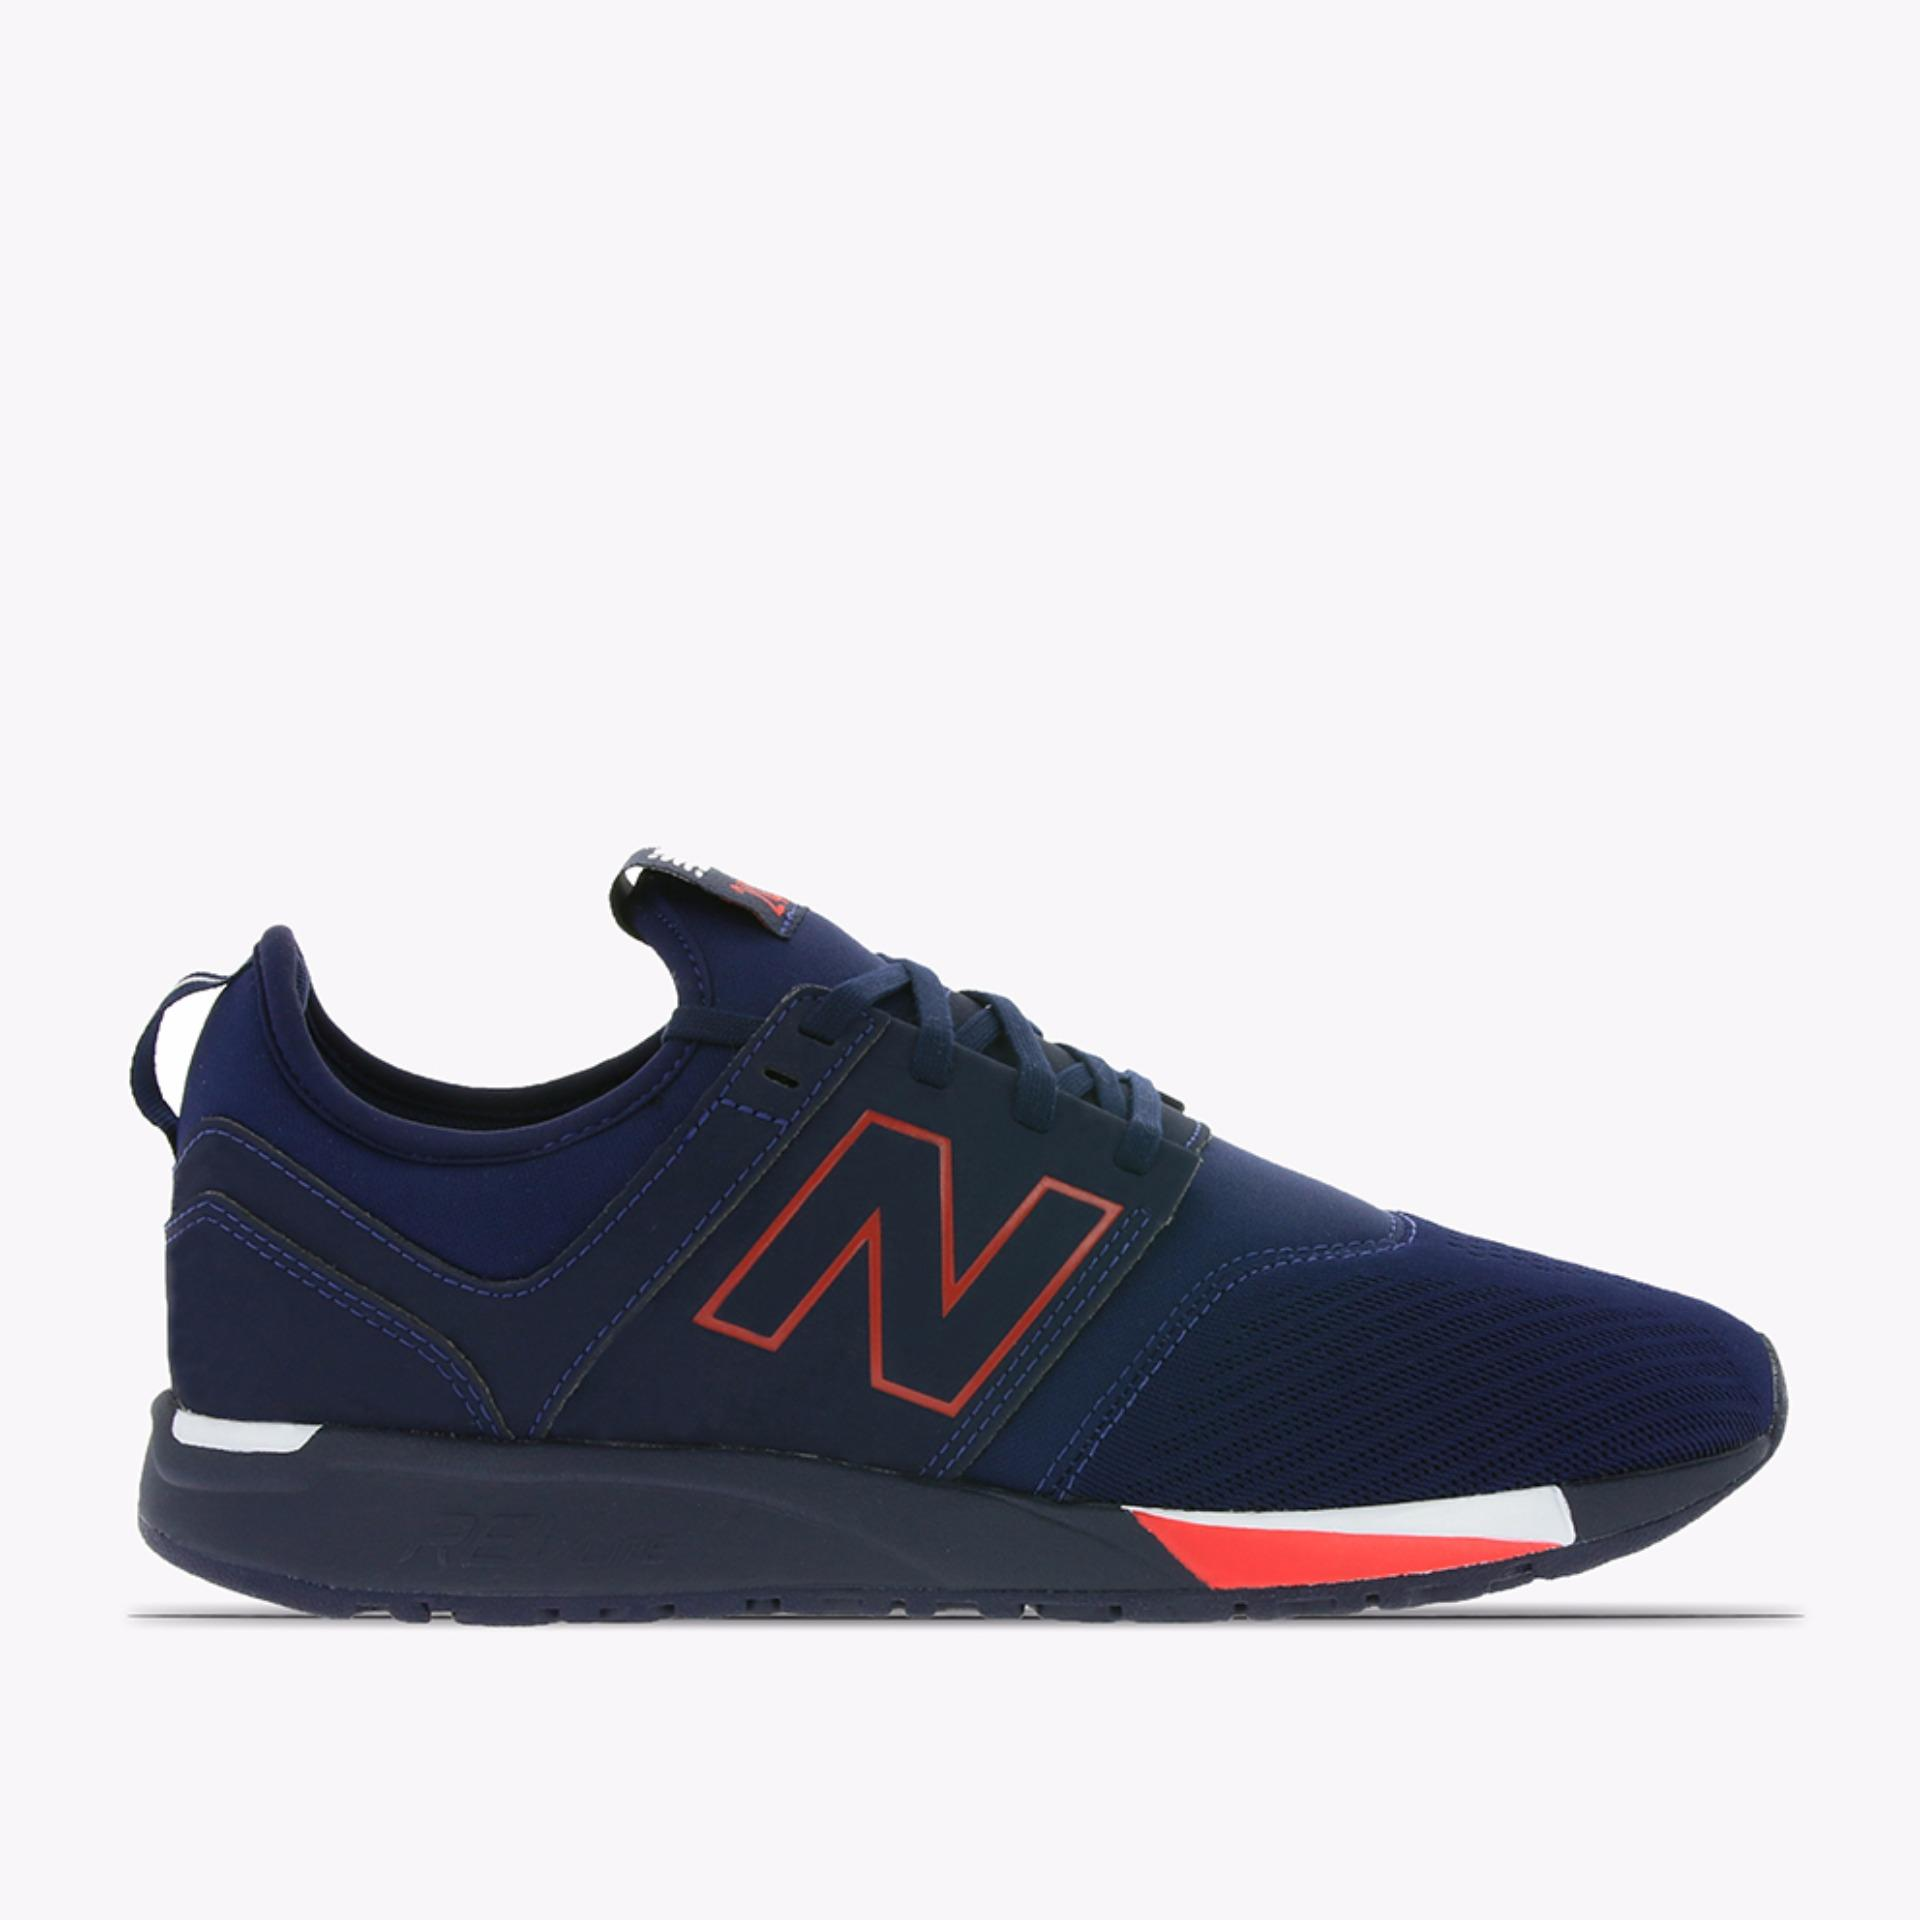 ... White Wikie Source · New Balance 247 Classic Men s Lifestyle Shoes Navy